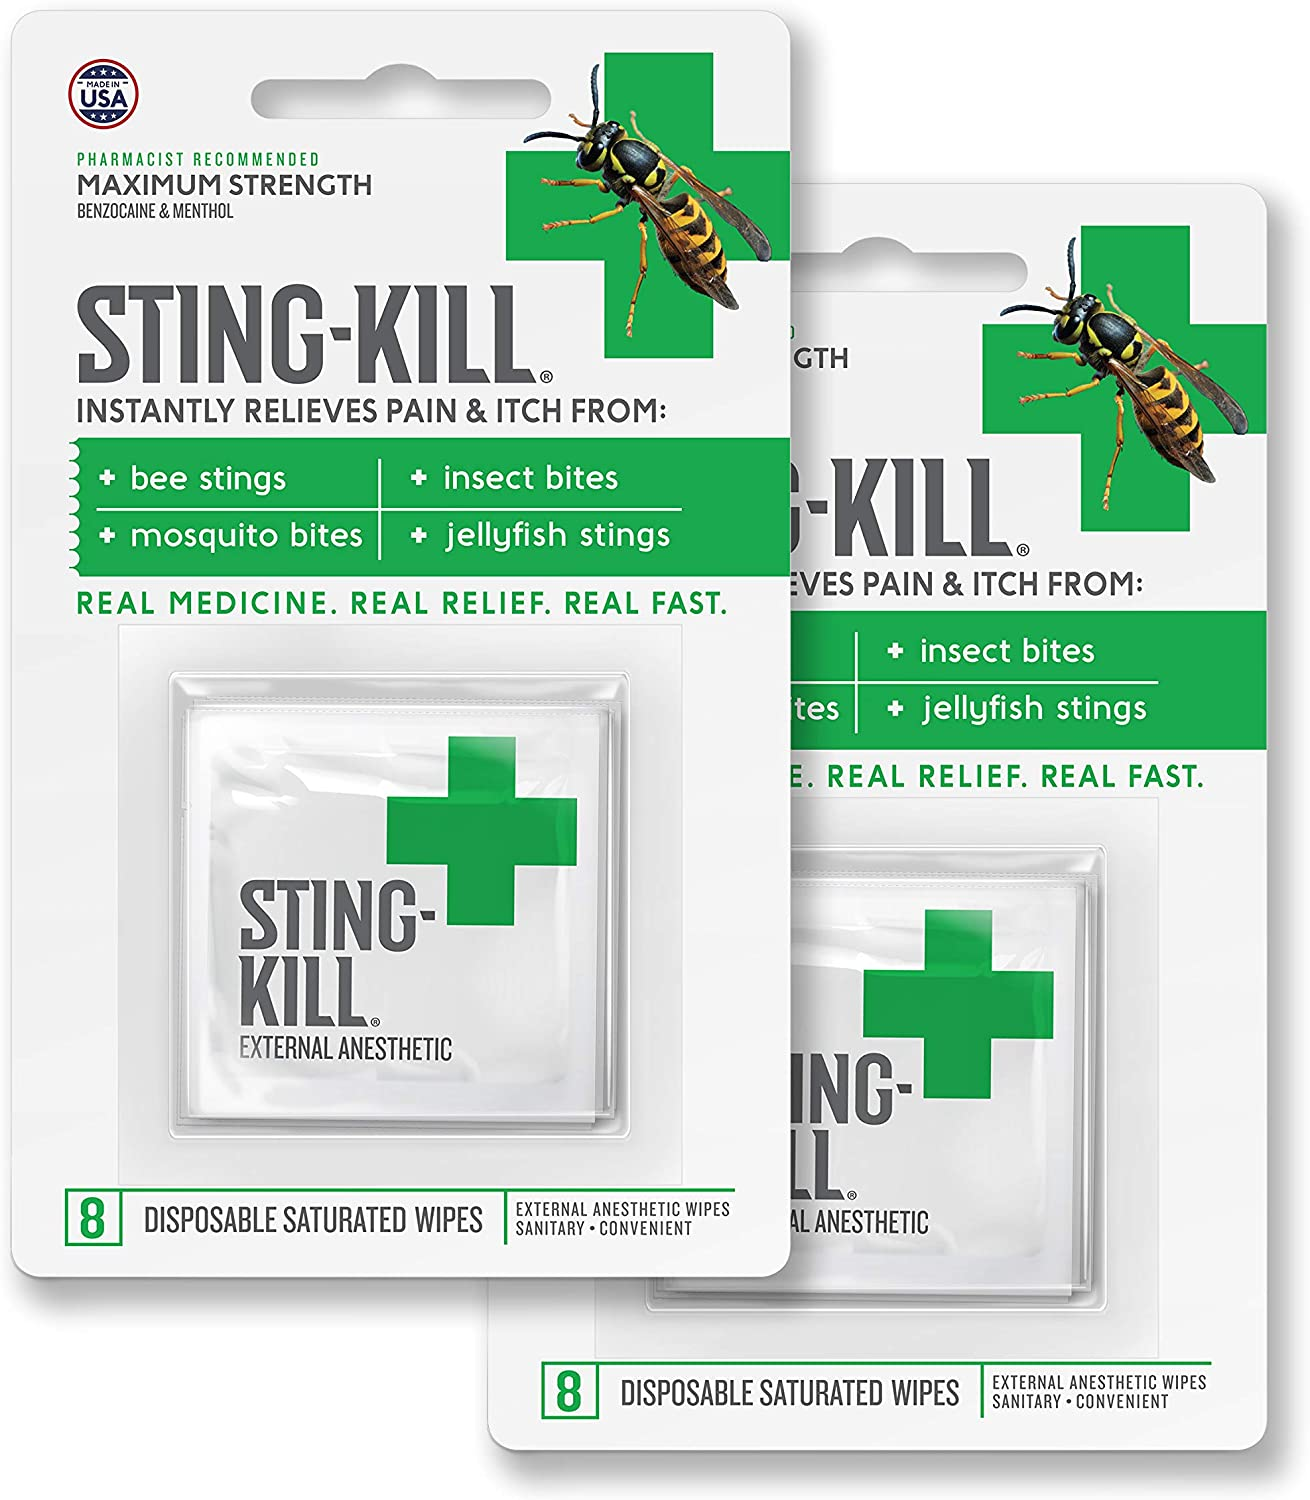 Amazon.com: Sting-Kill First Aid Anesthetic Wipes, Instant Pain + ...